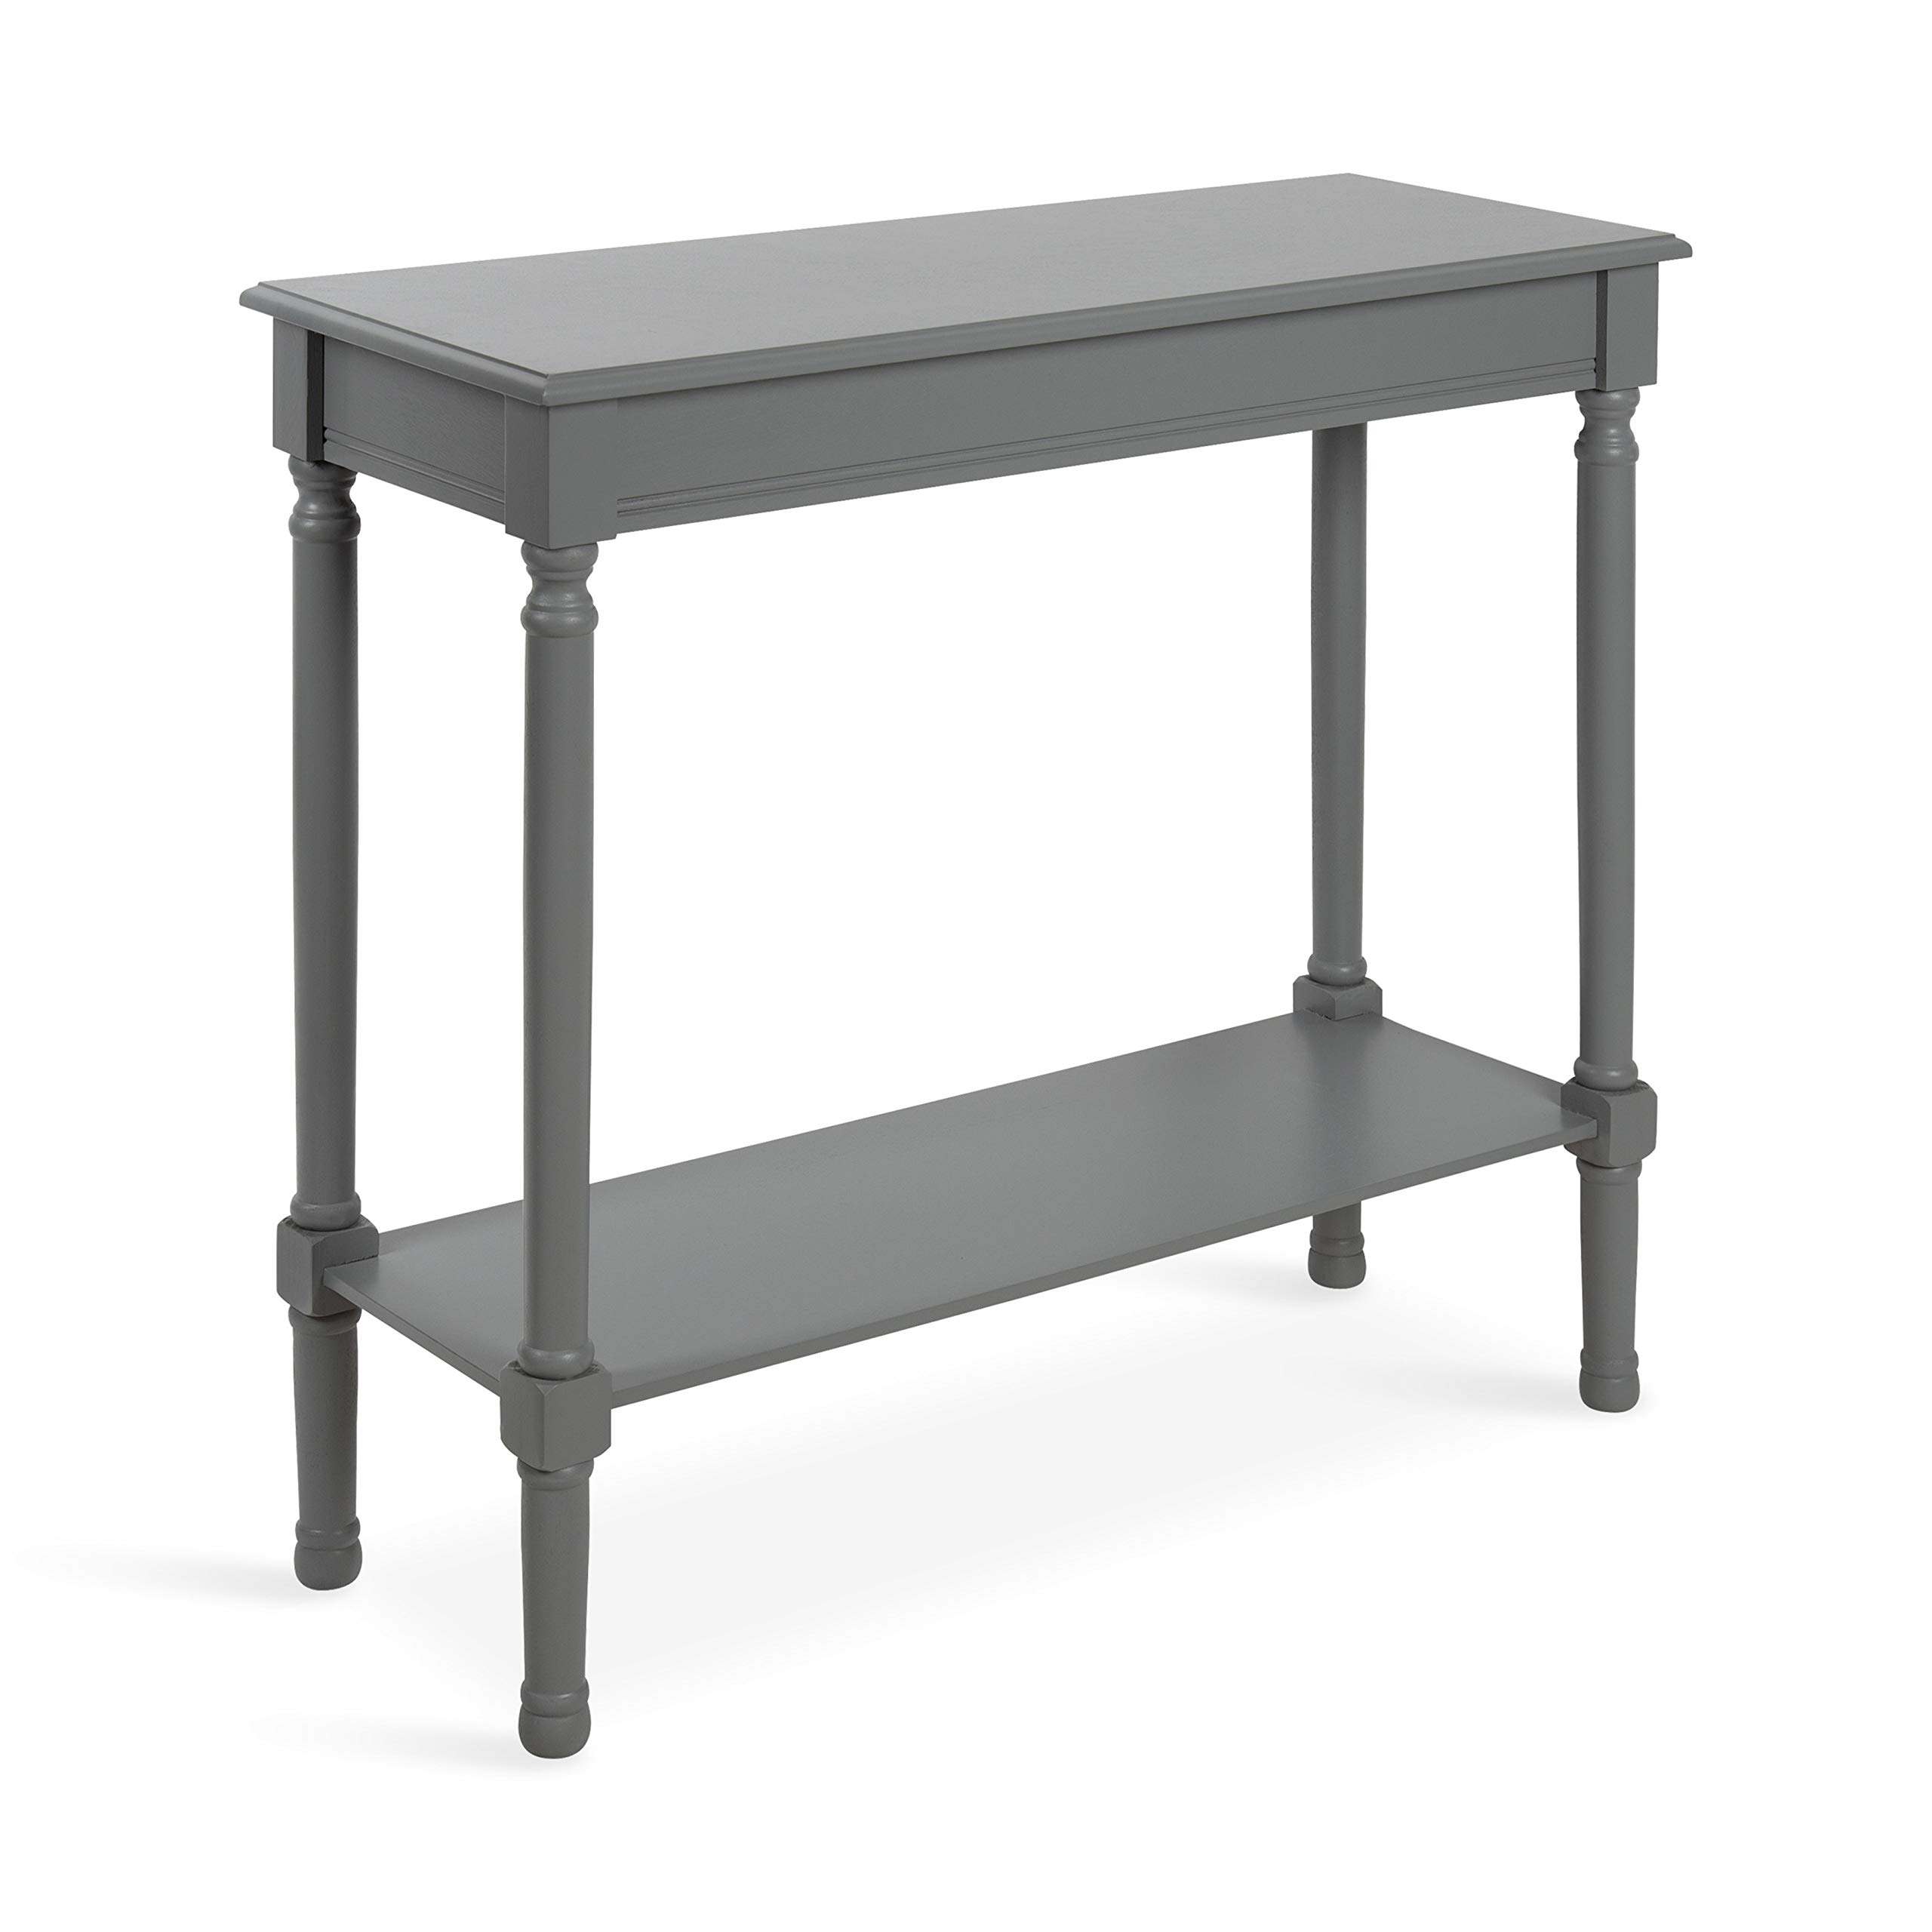 Kate and Laurel Wyndmoore Wood Rectangular Console Table with Shelf, Gray by Kate and Laurel